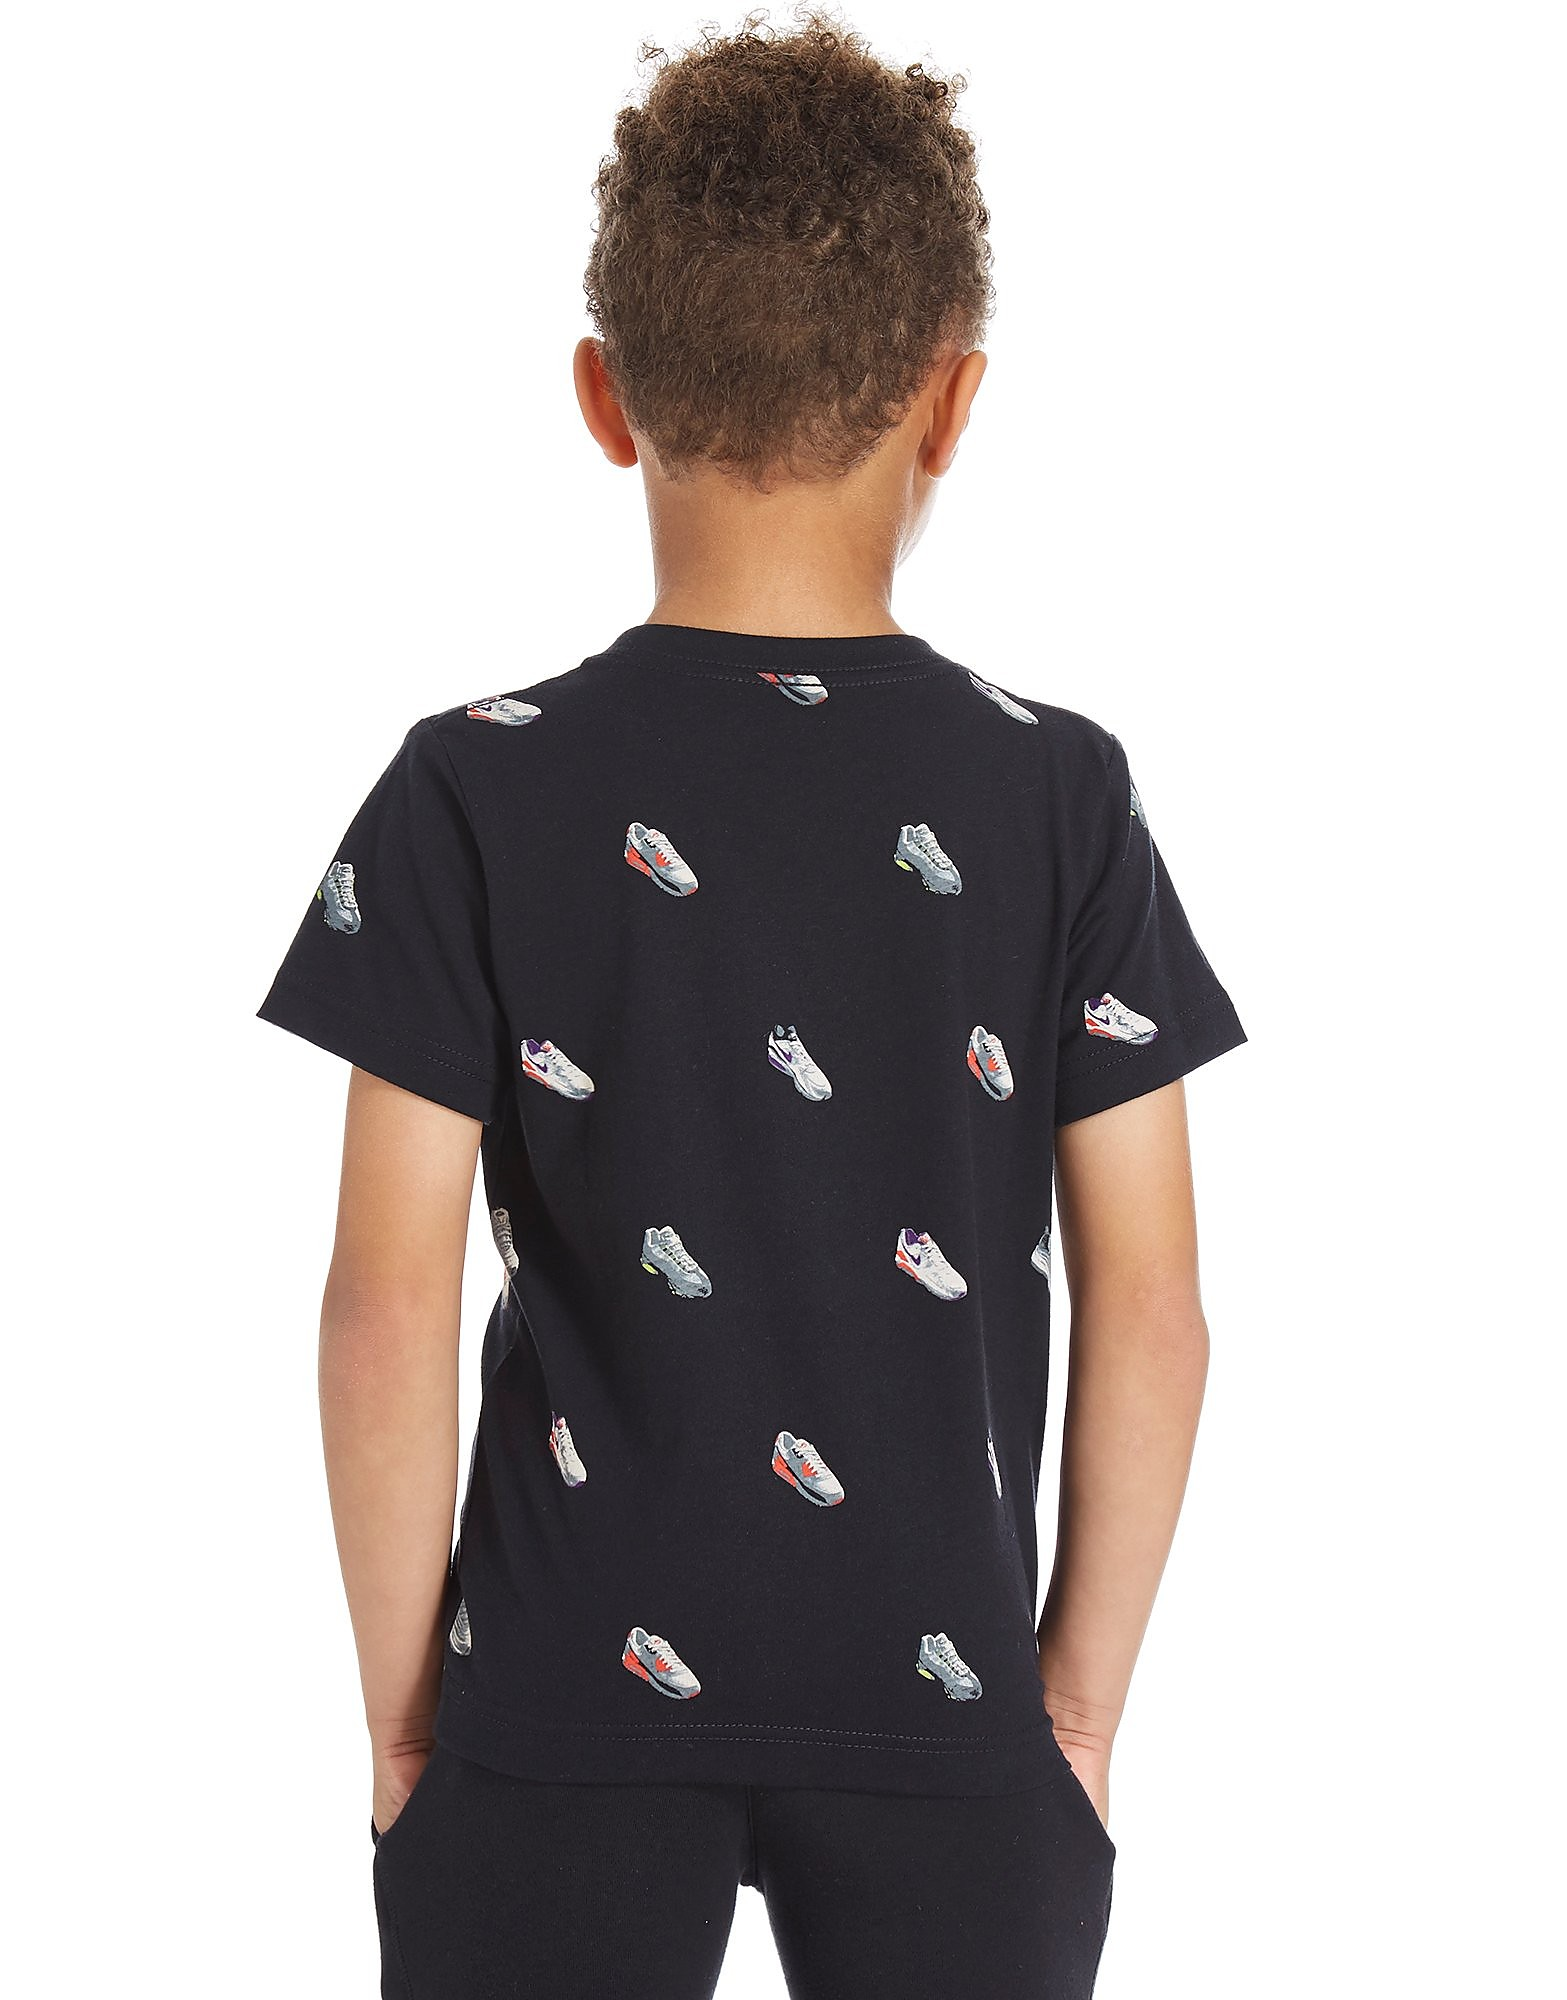 Nike Air Shoe Print T-Shirt Bambino